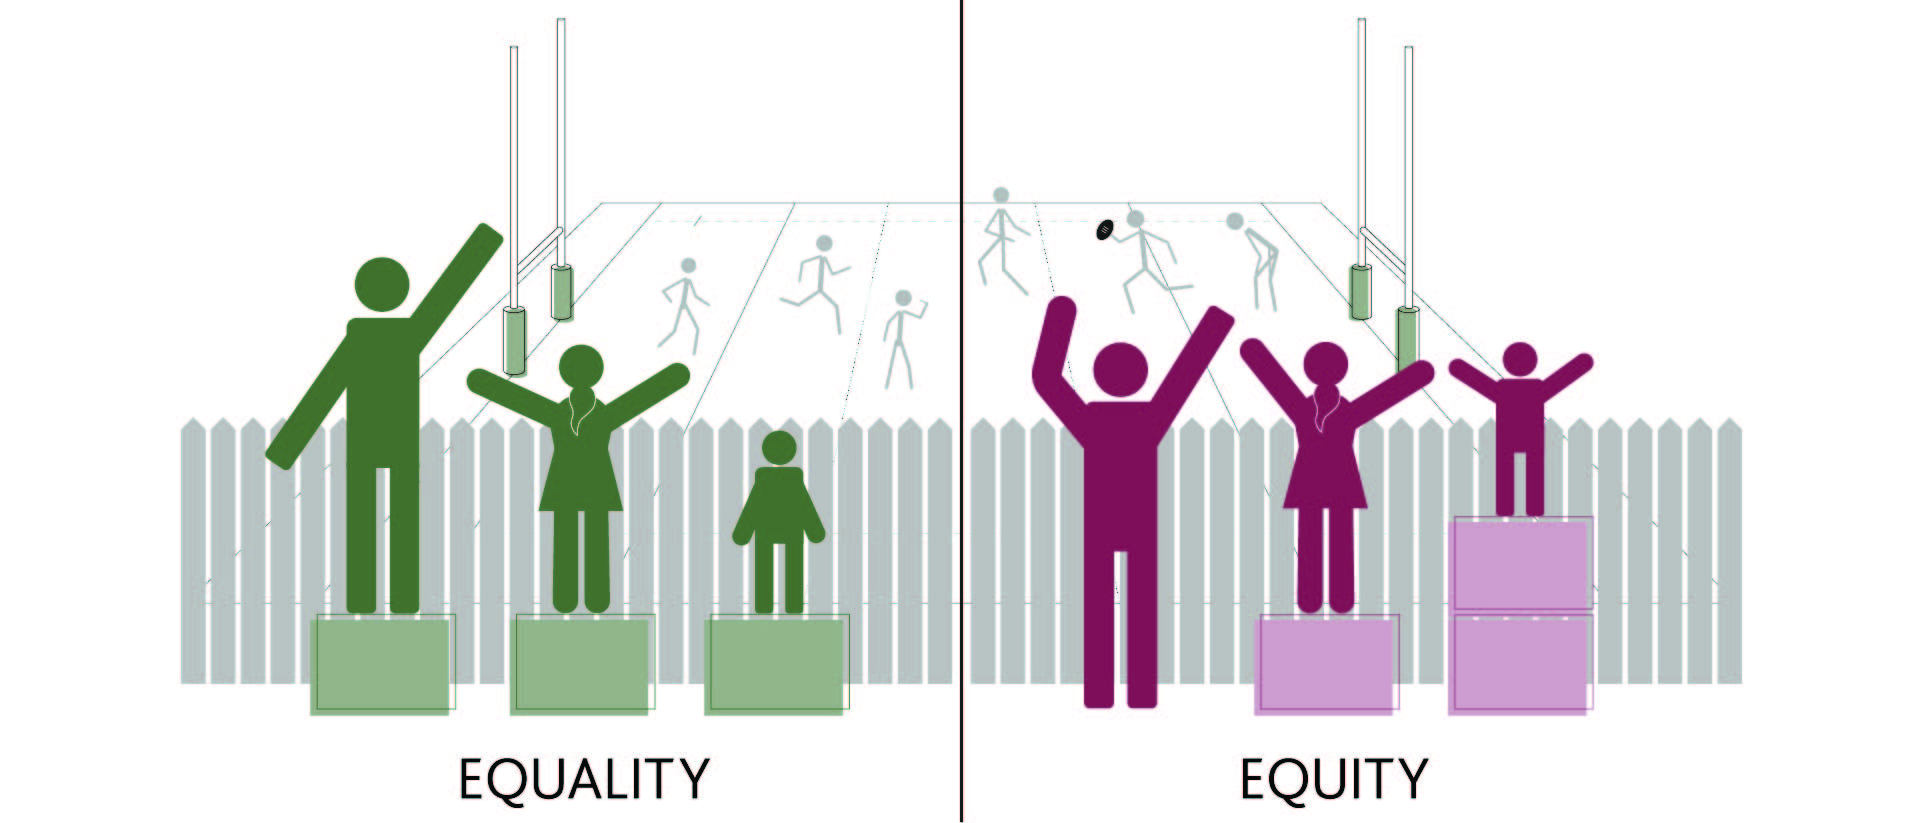 An illustration of the difference between equality and equity showing people standing on platforms to watch a game over a fence.